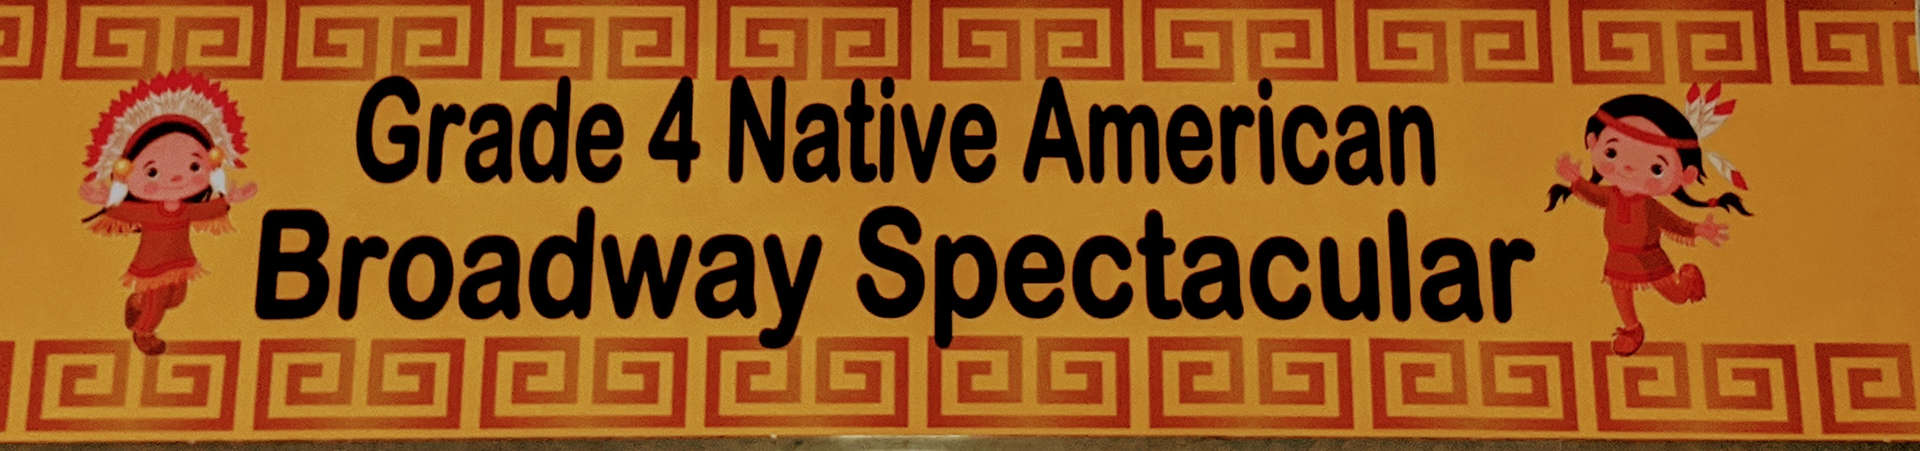 Welcome to the 4th grade Native American Broadway Spectacular!!!